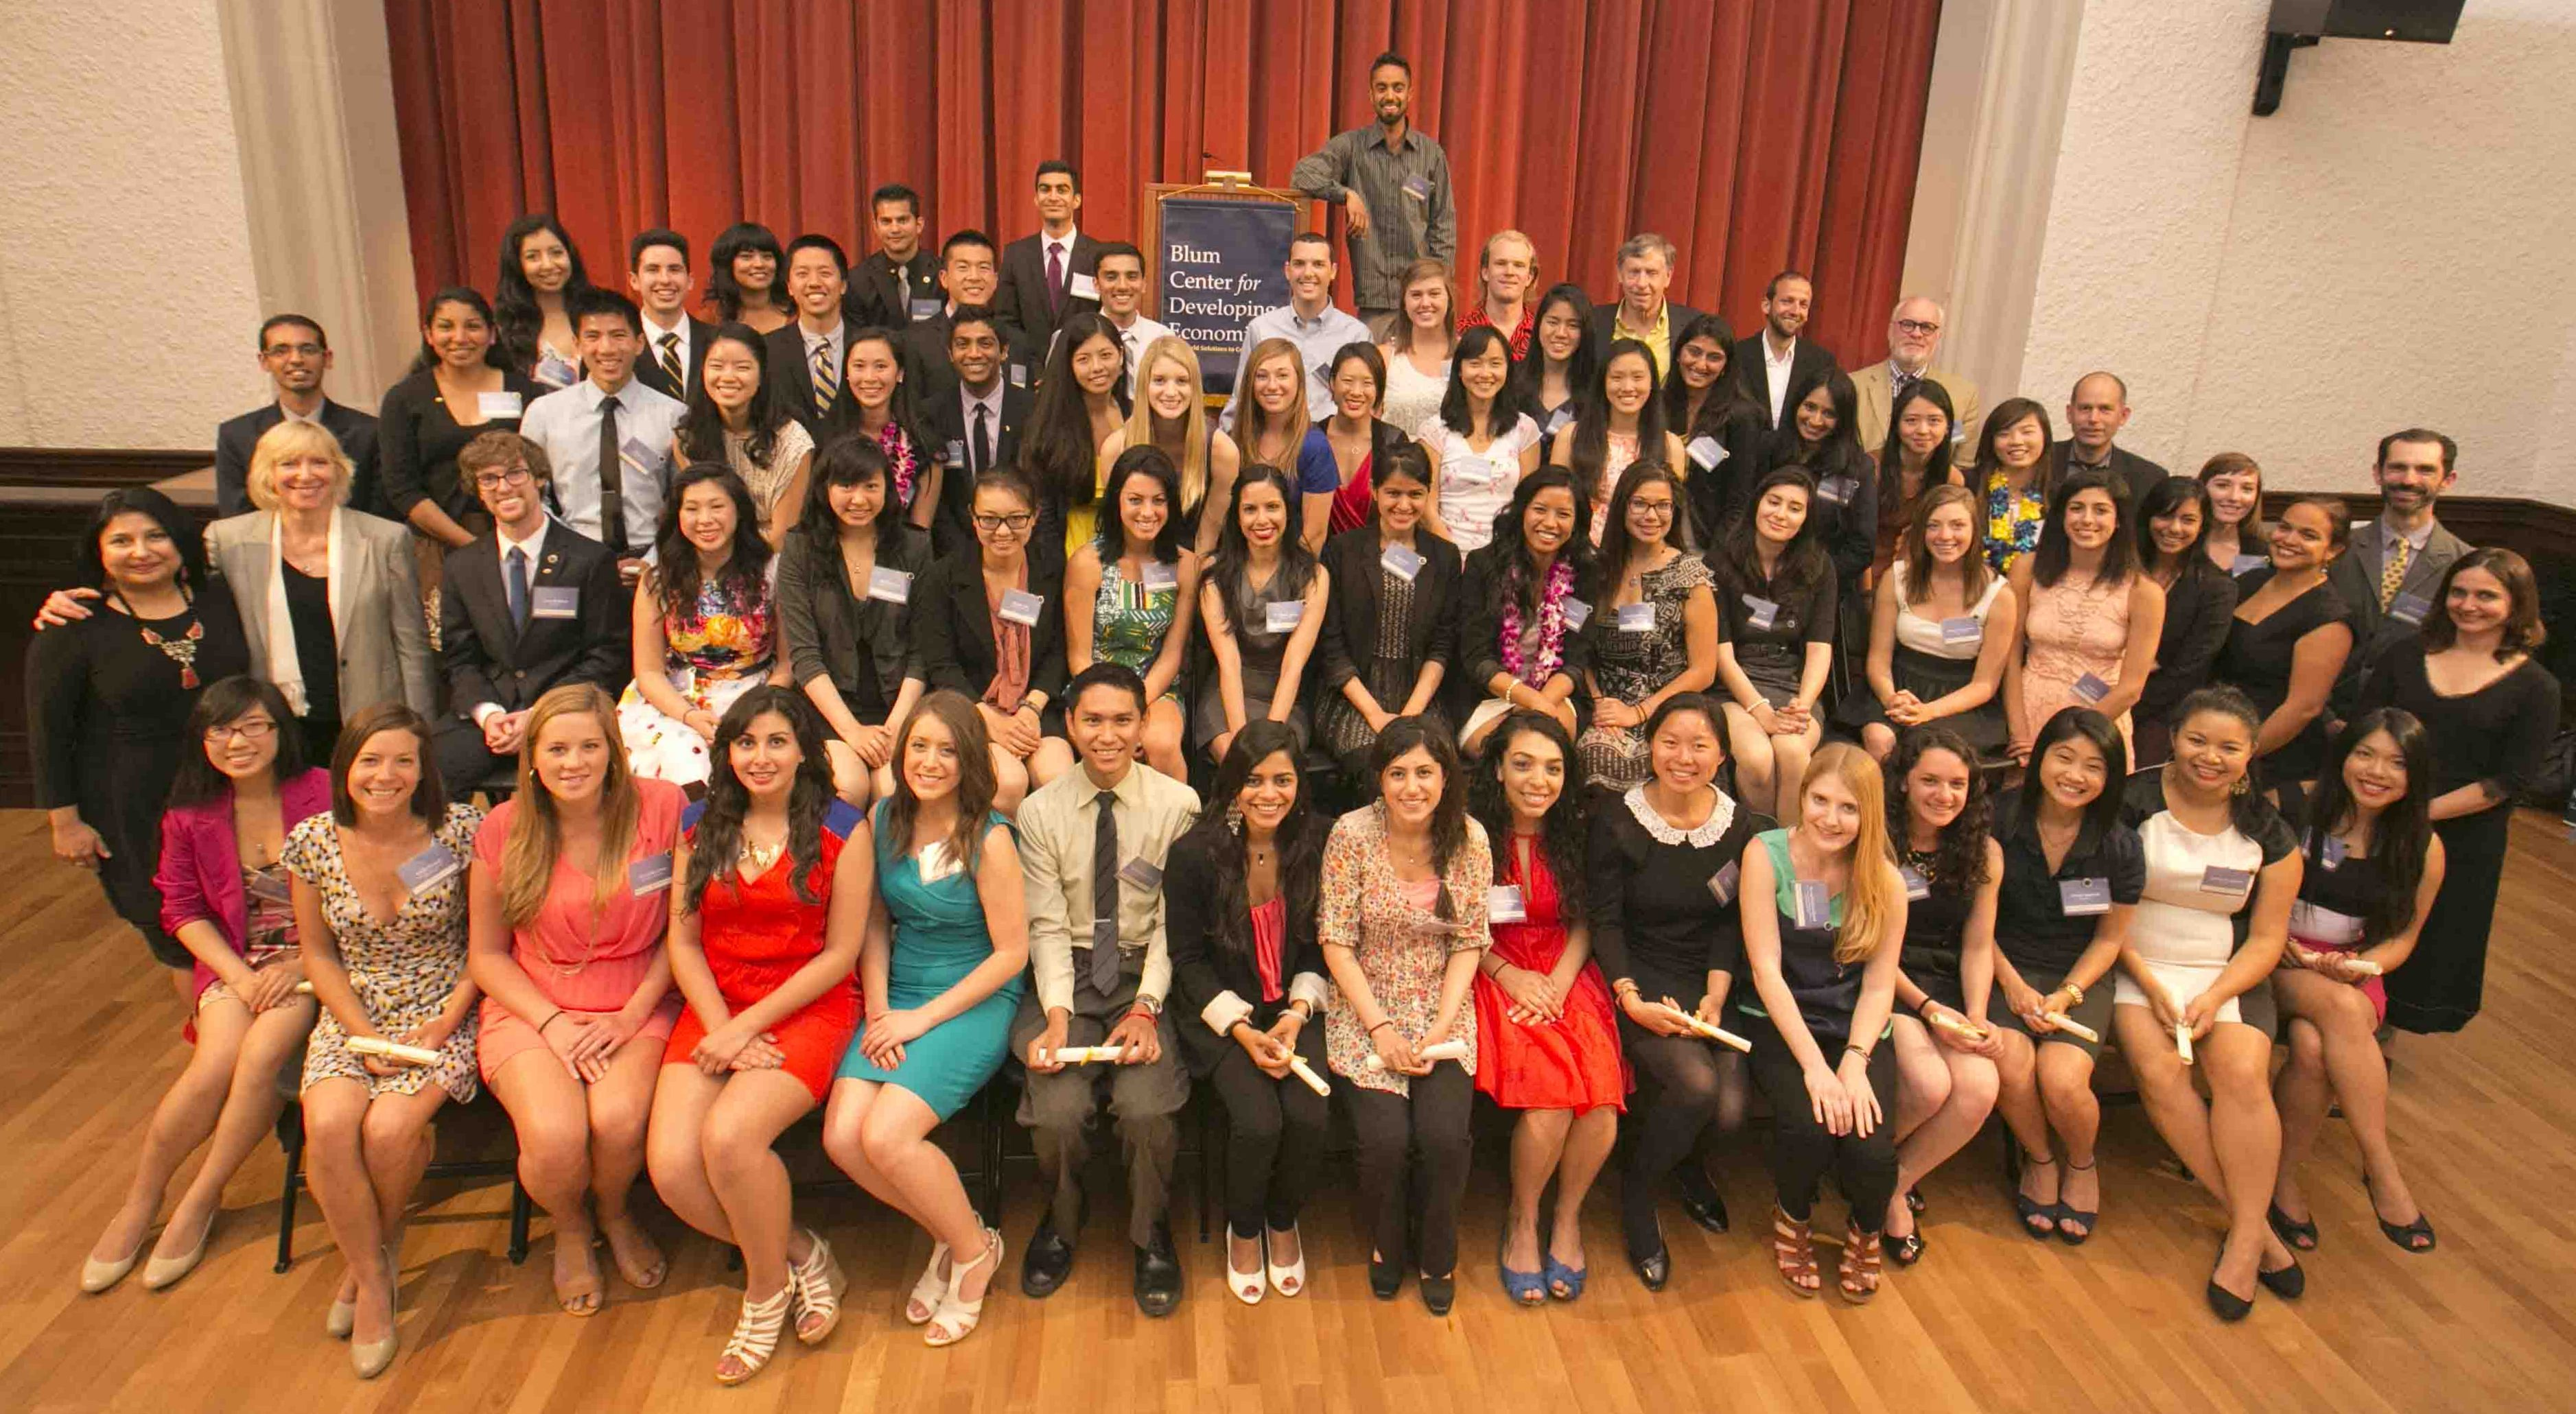 2013 GPP Graduates Look to Careers of Social Engagement